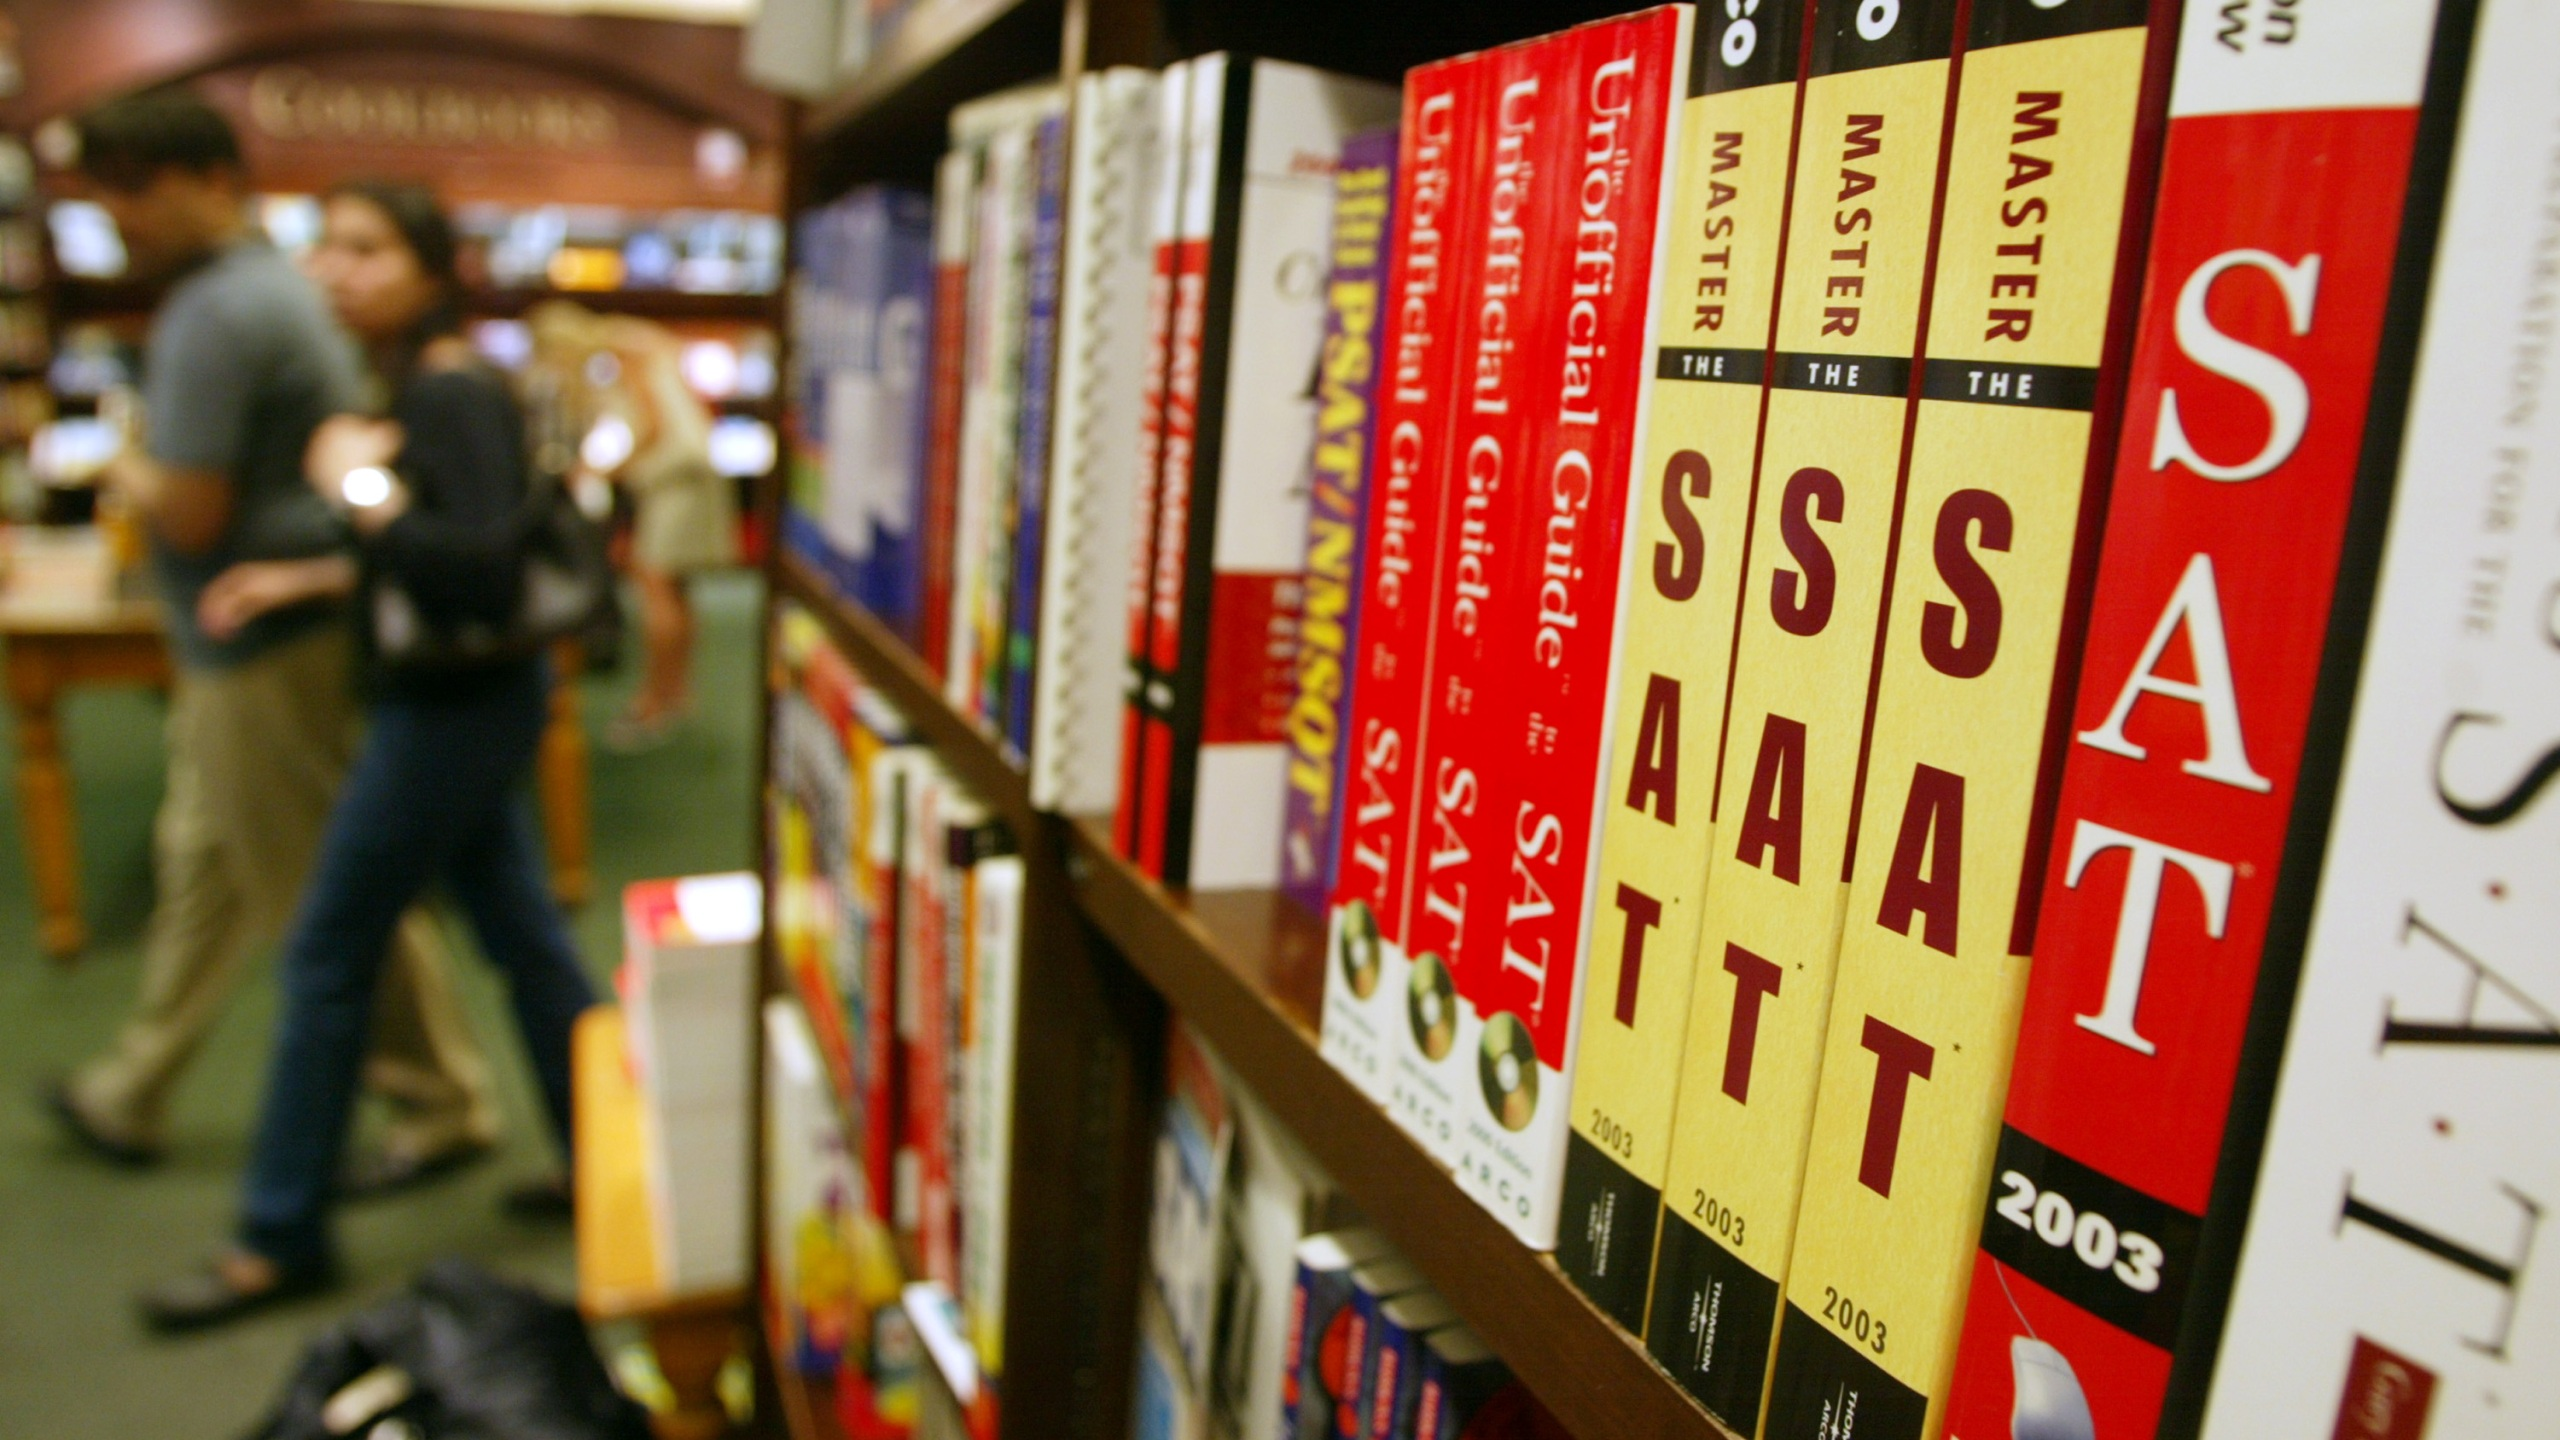 SAT test preparation books sit on a shelf at a Barnes and Noble store June 27, 2002, in New York City. (Mario Tama/Getty Images)